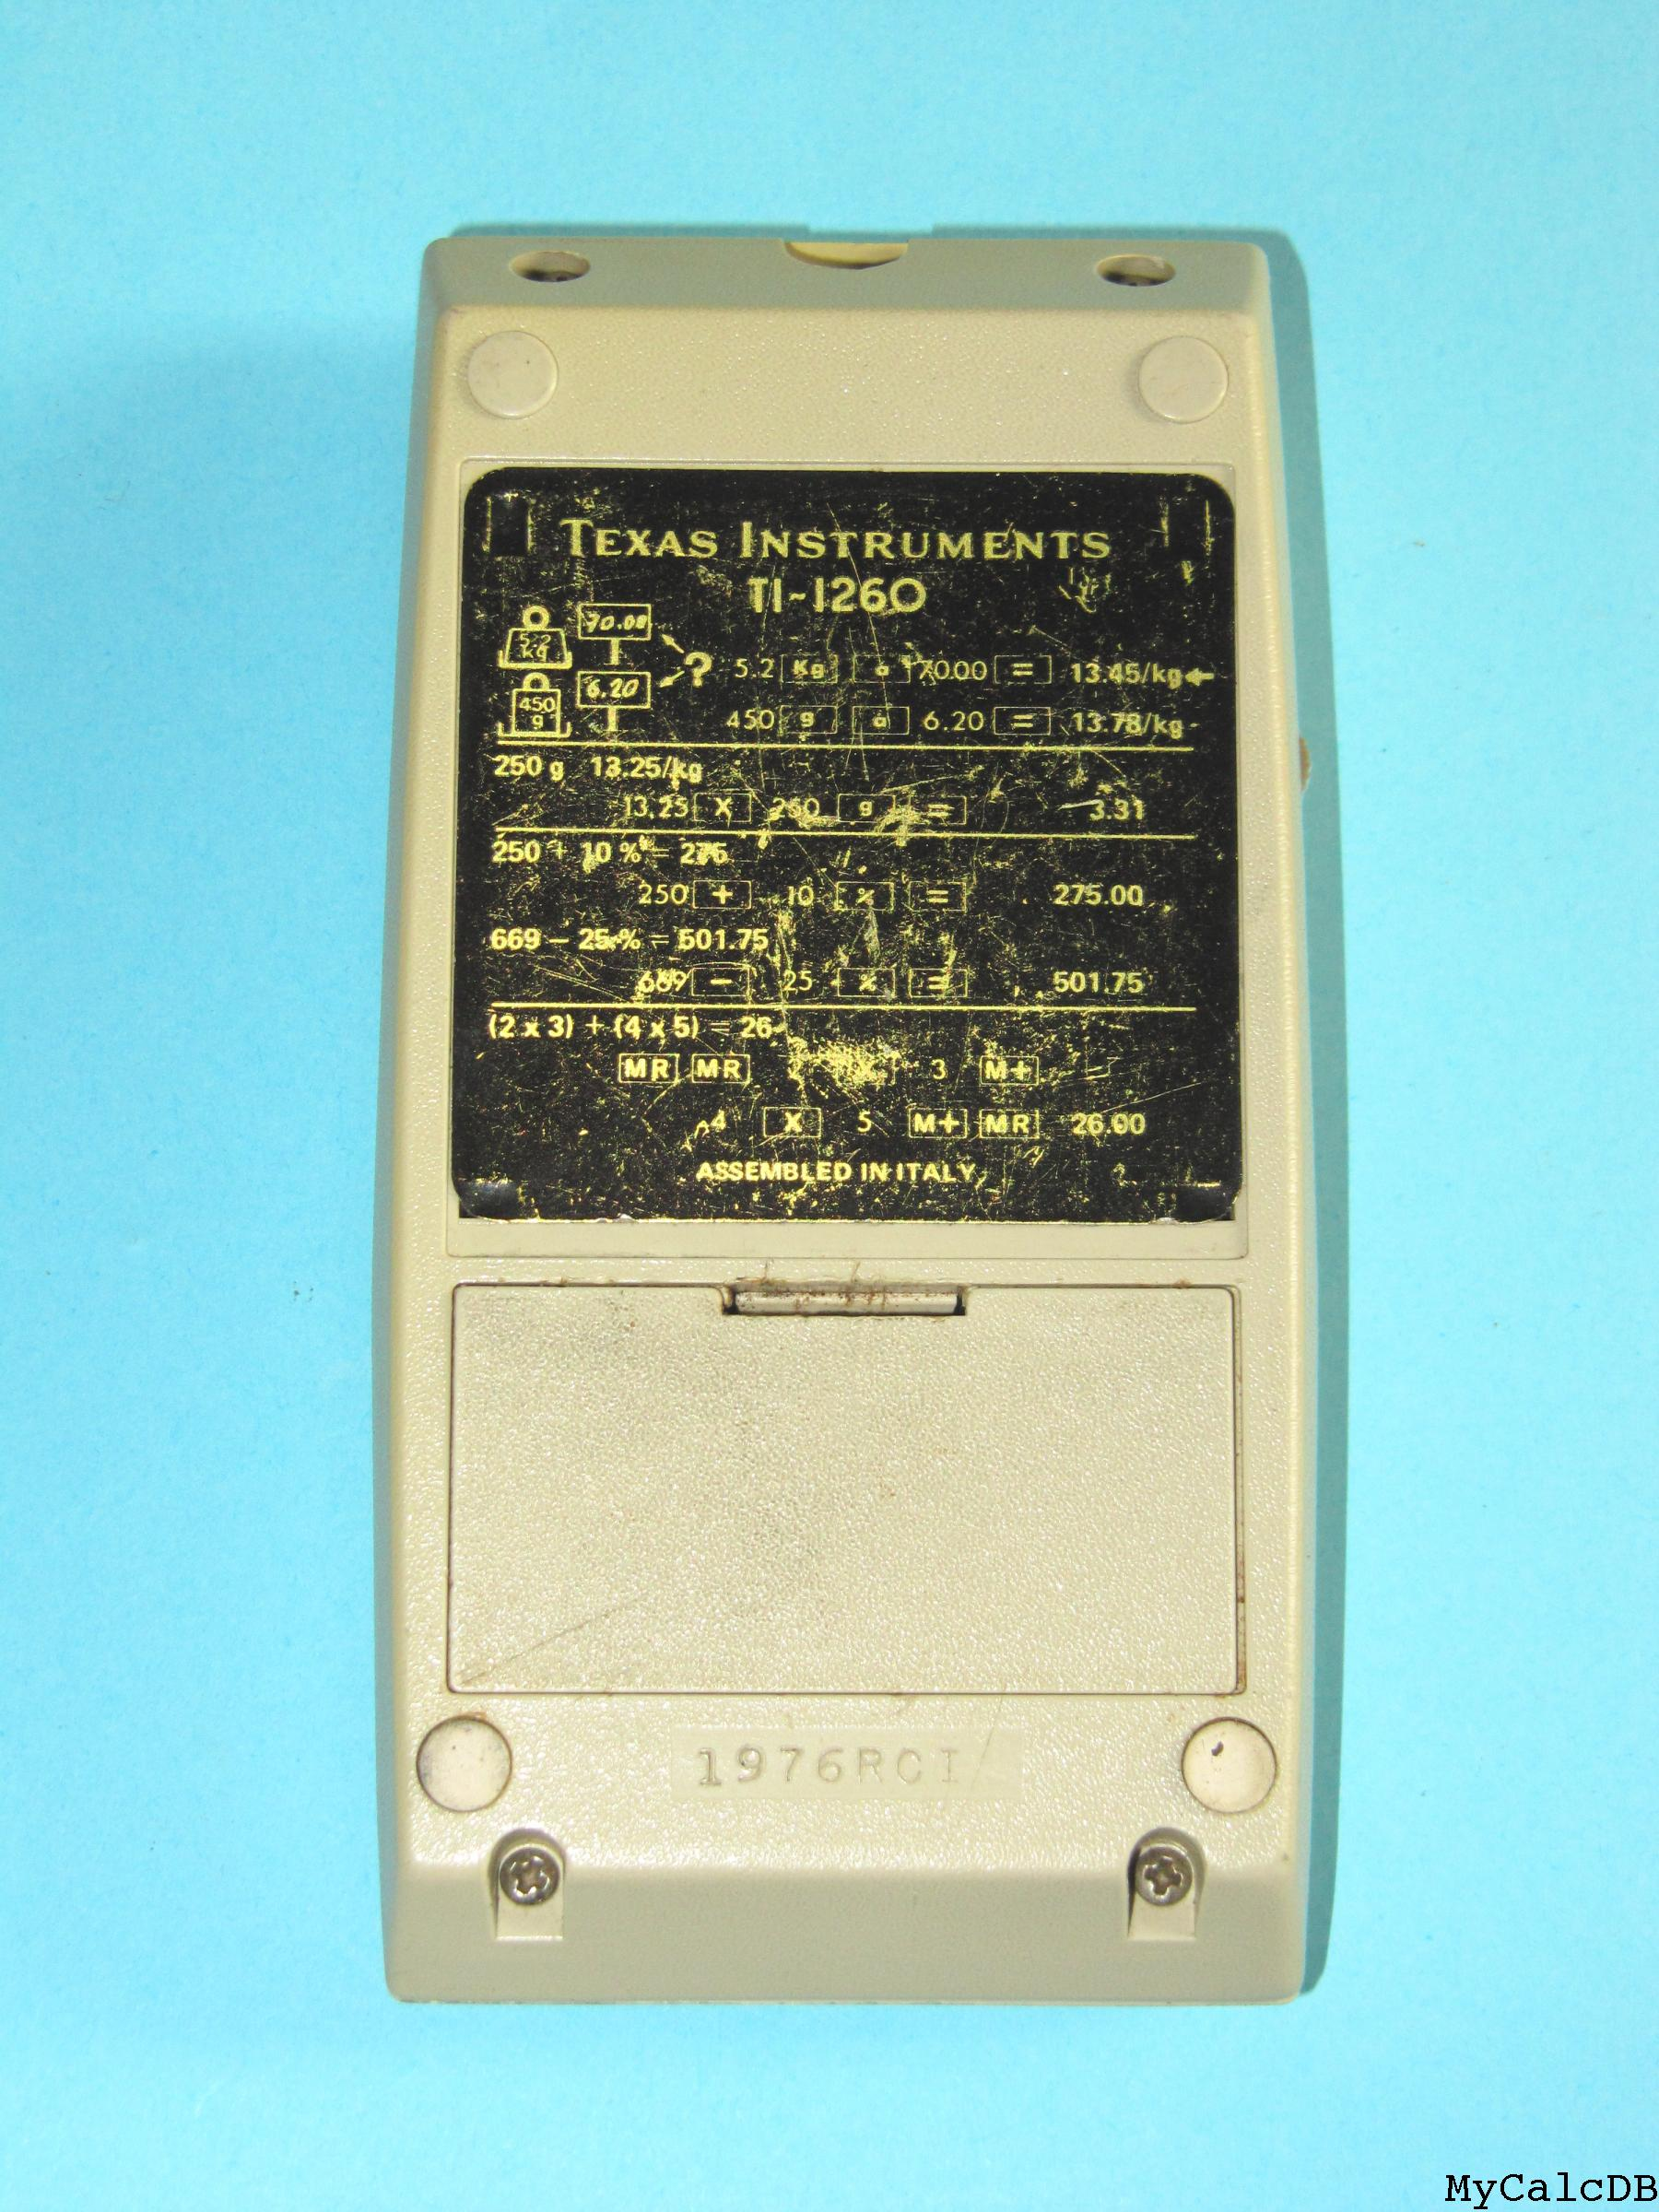 Texas Instruments TI-1260